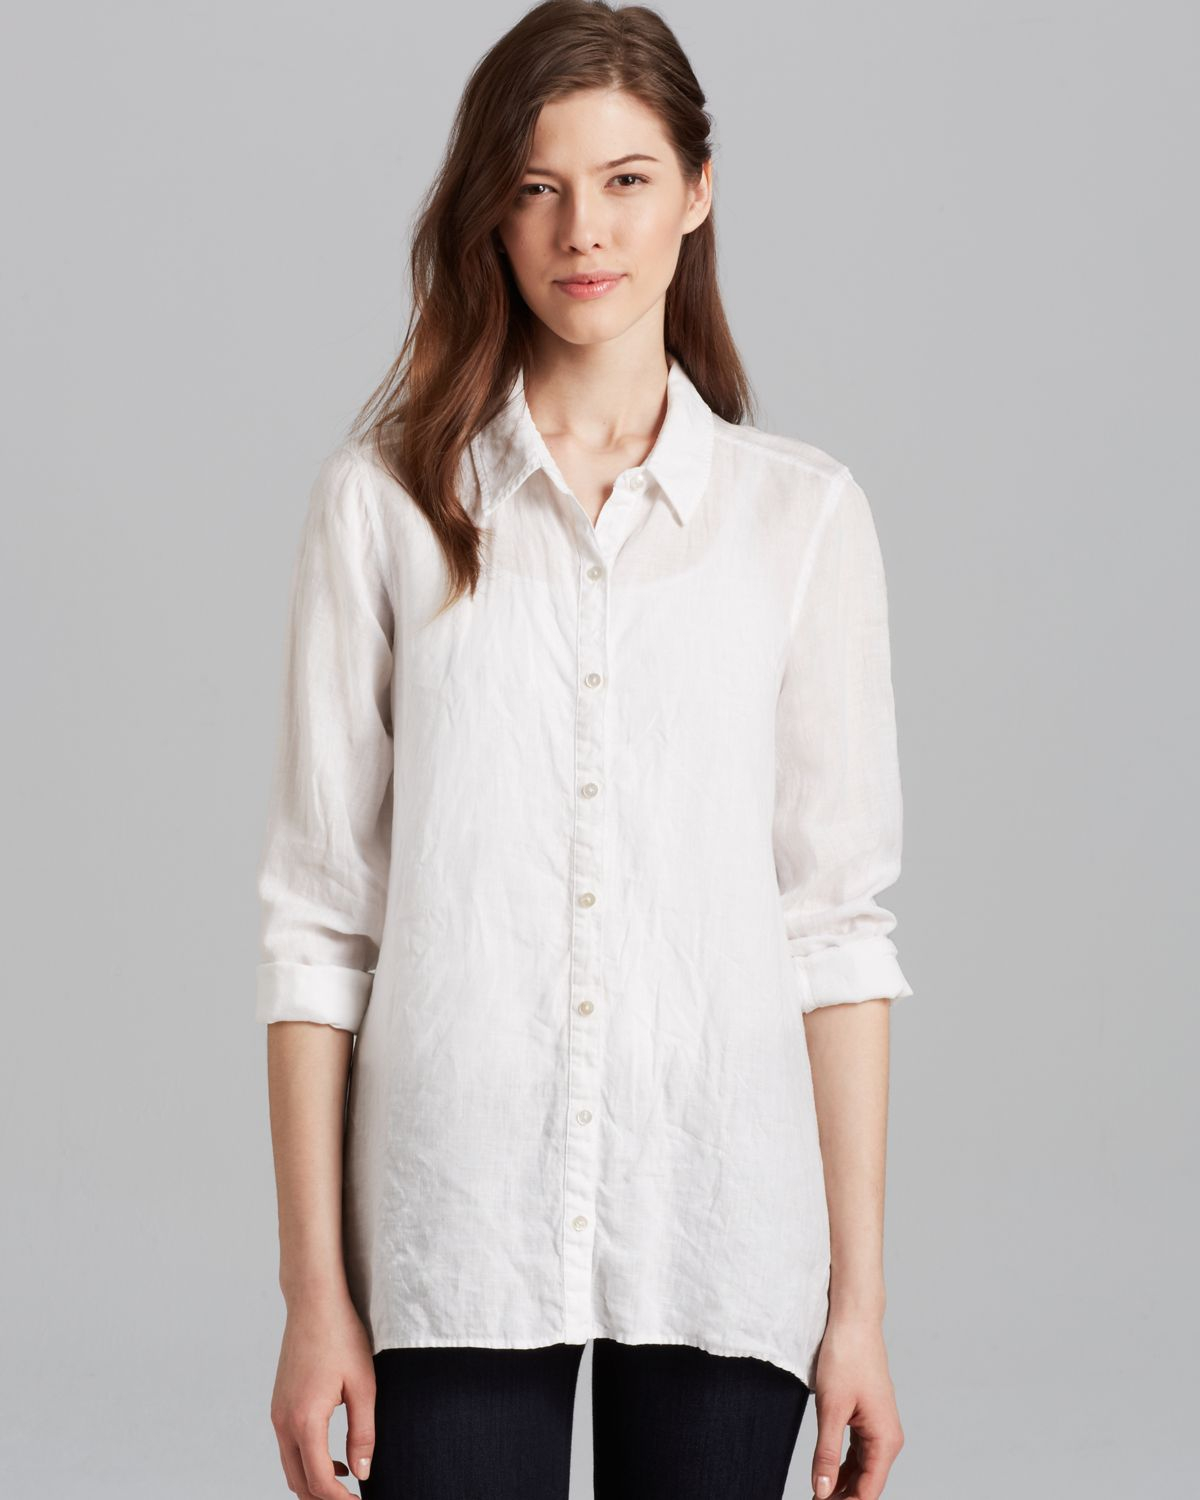 53763d61a7f812 Lyst - Eileen Fisher Classic Collar Boxy Shirt in White